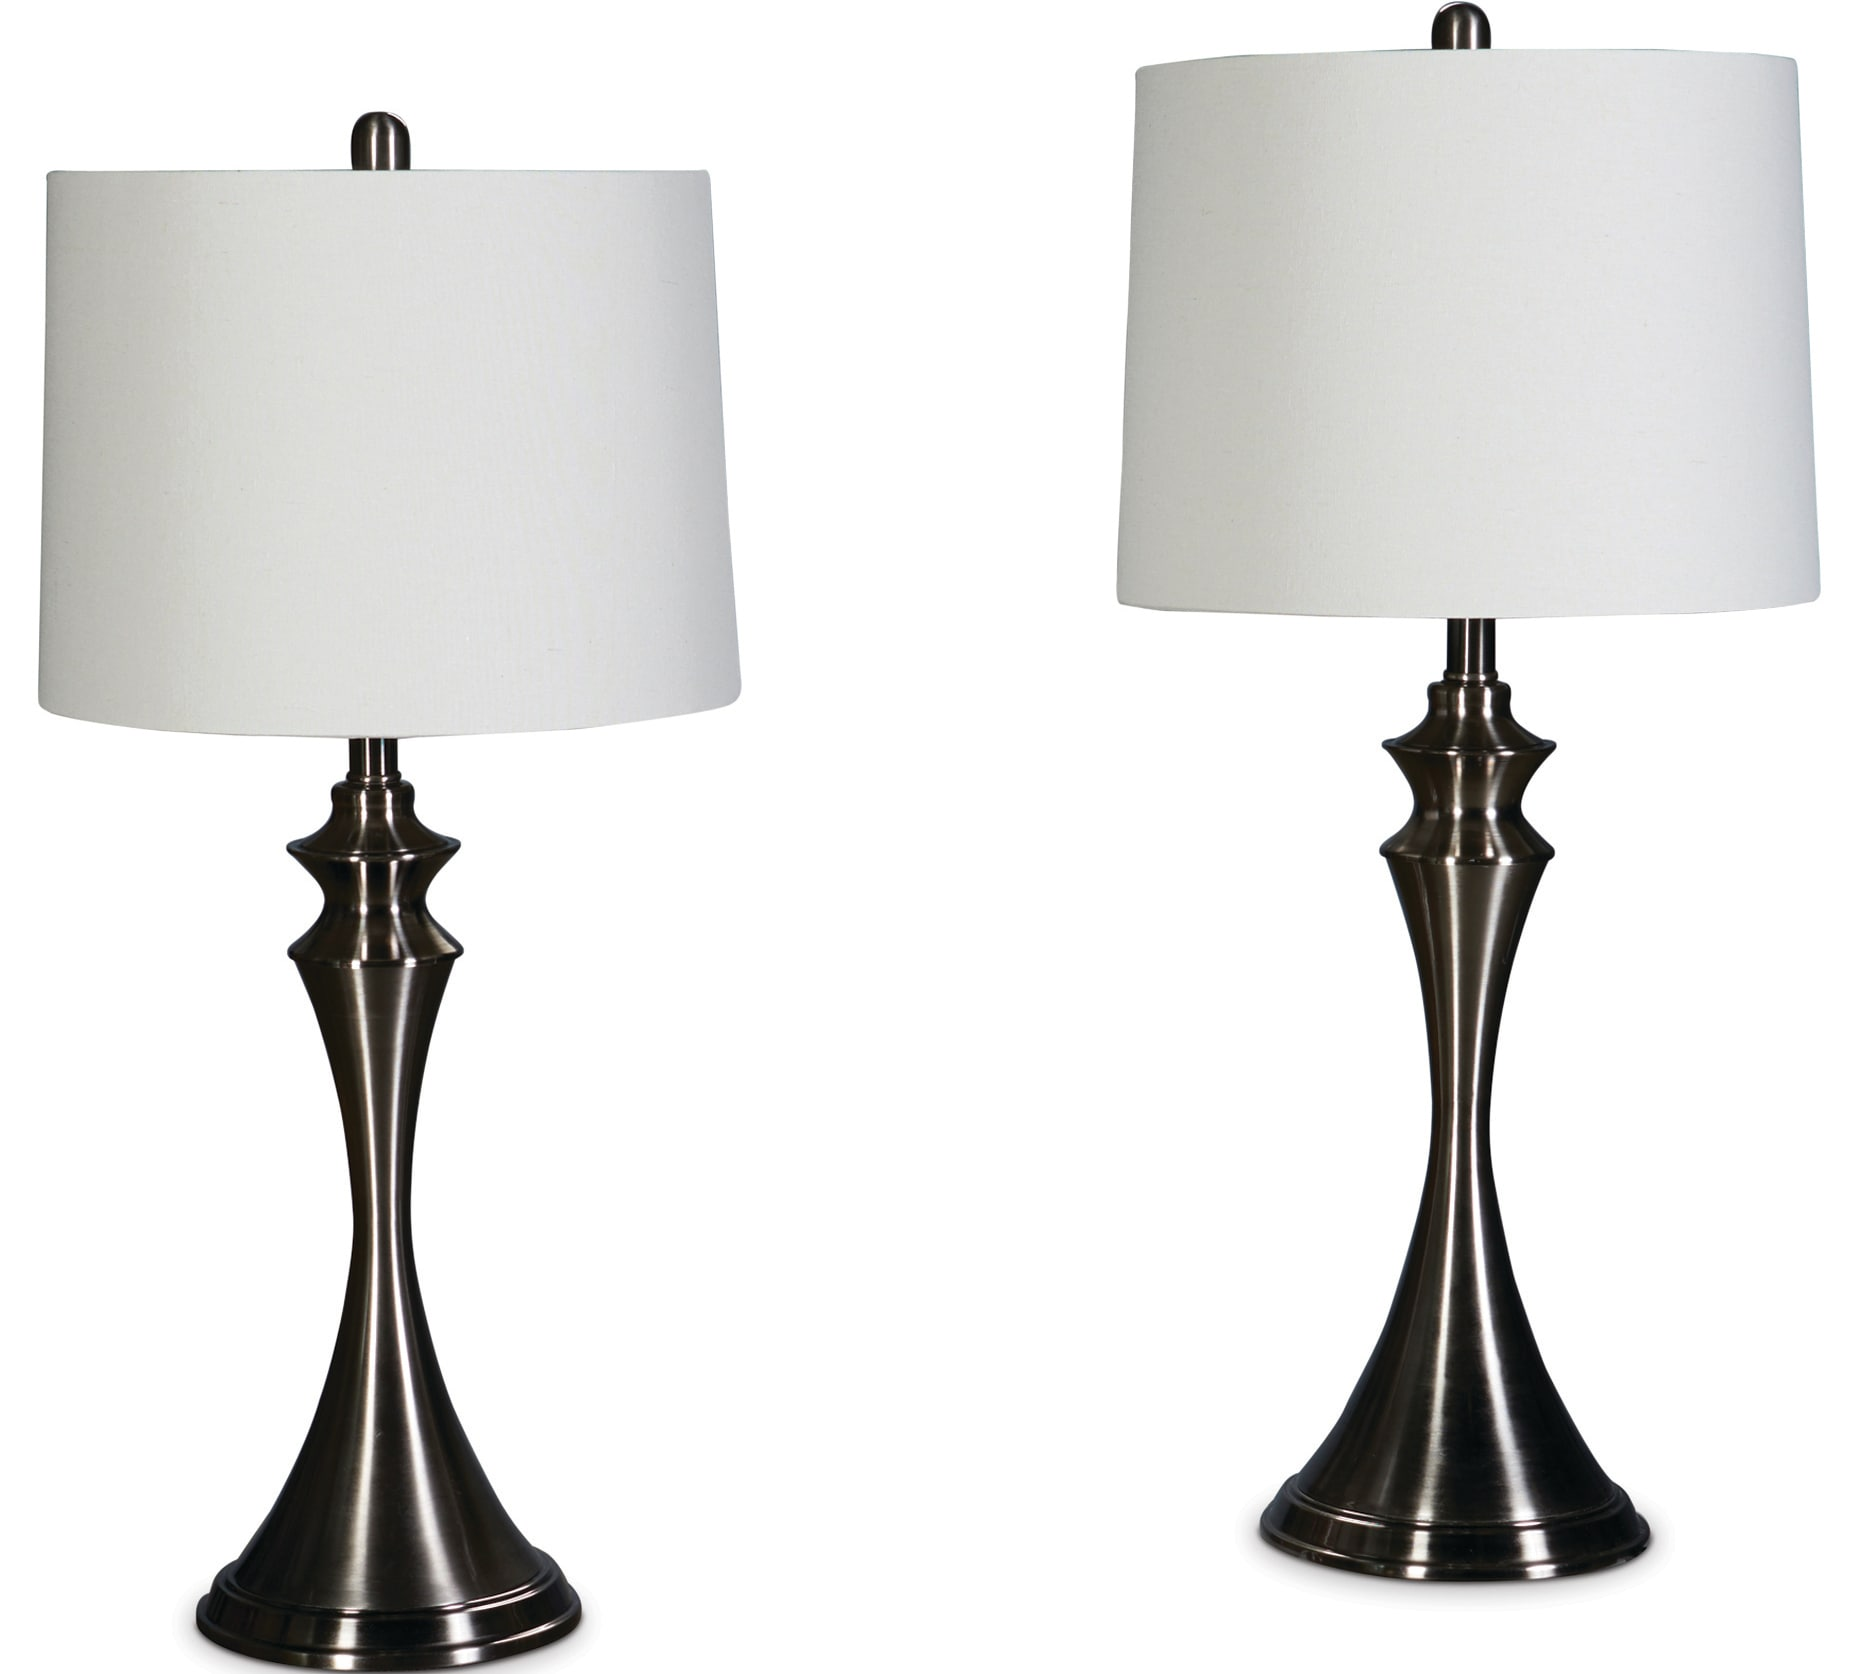 Table Lamps - Satin Nickel